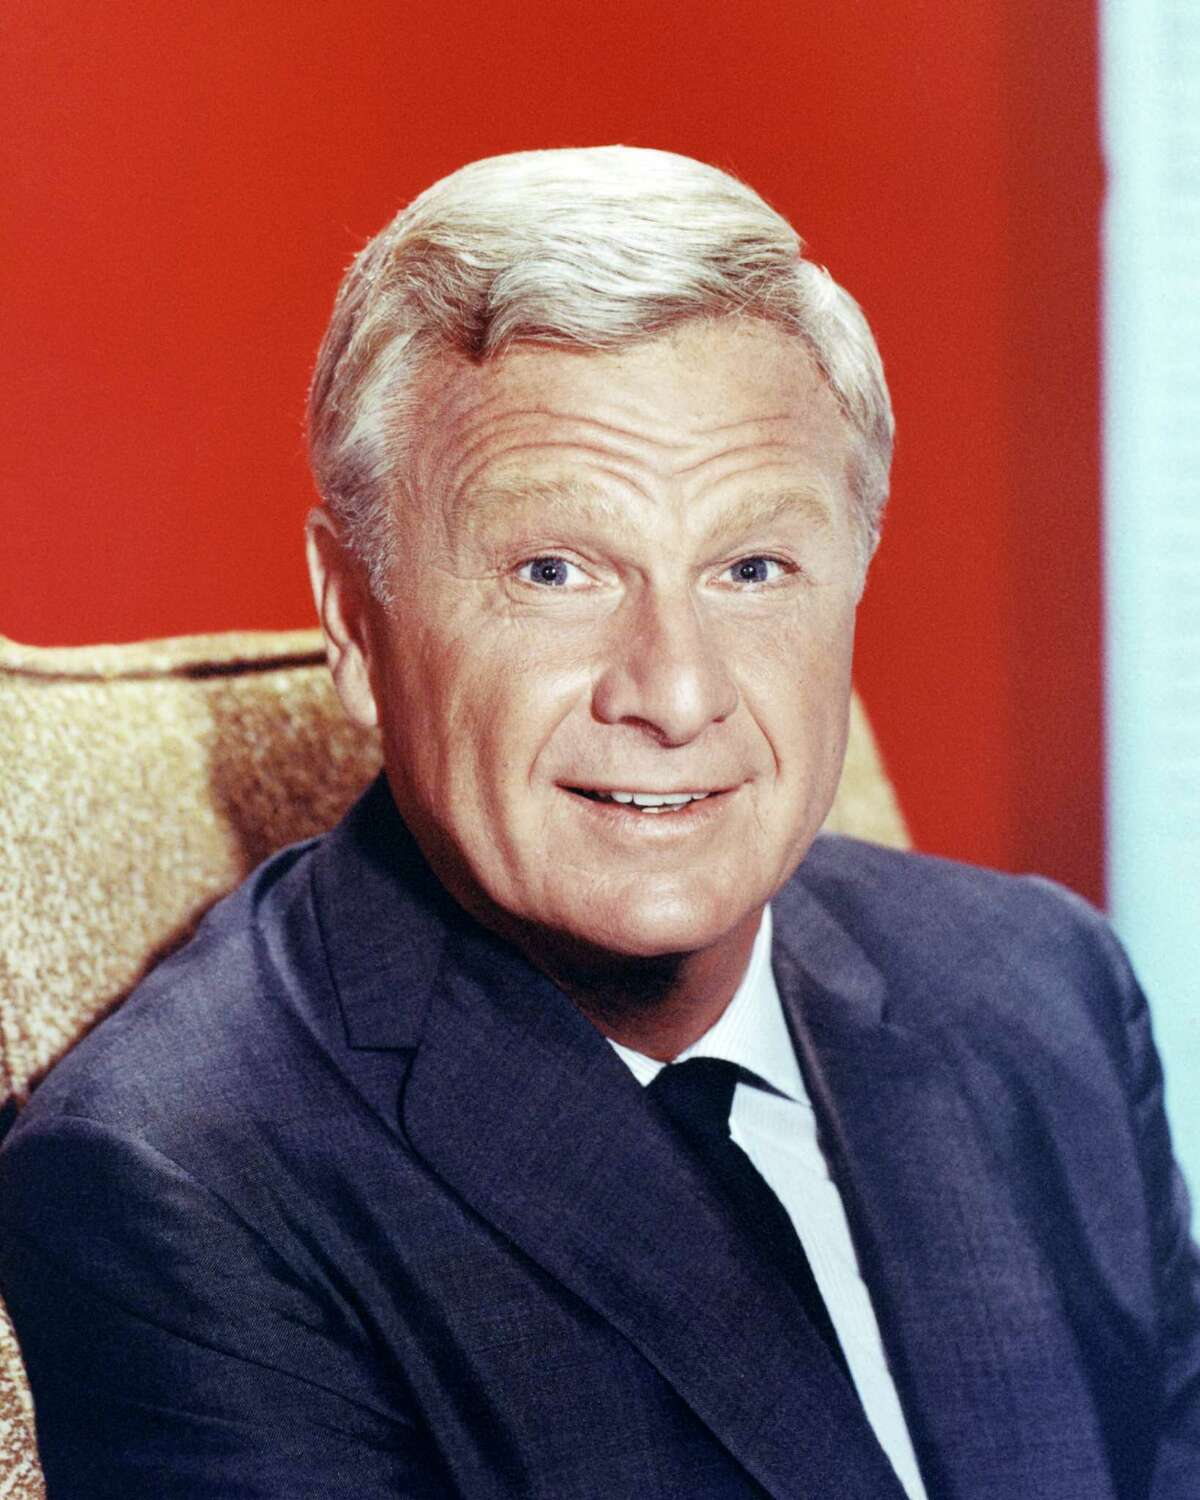 In the 1960s, a deeply transitional time for both cinema and television, studios clung to the old star system by presenting their talent as flawlessly as possible in posed publicity photos. See how many of these actors you recognize from five decades ago, starting with Eddie Albert.